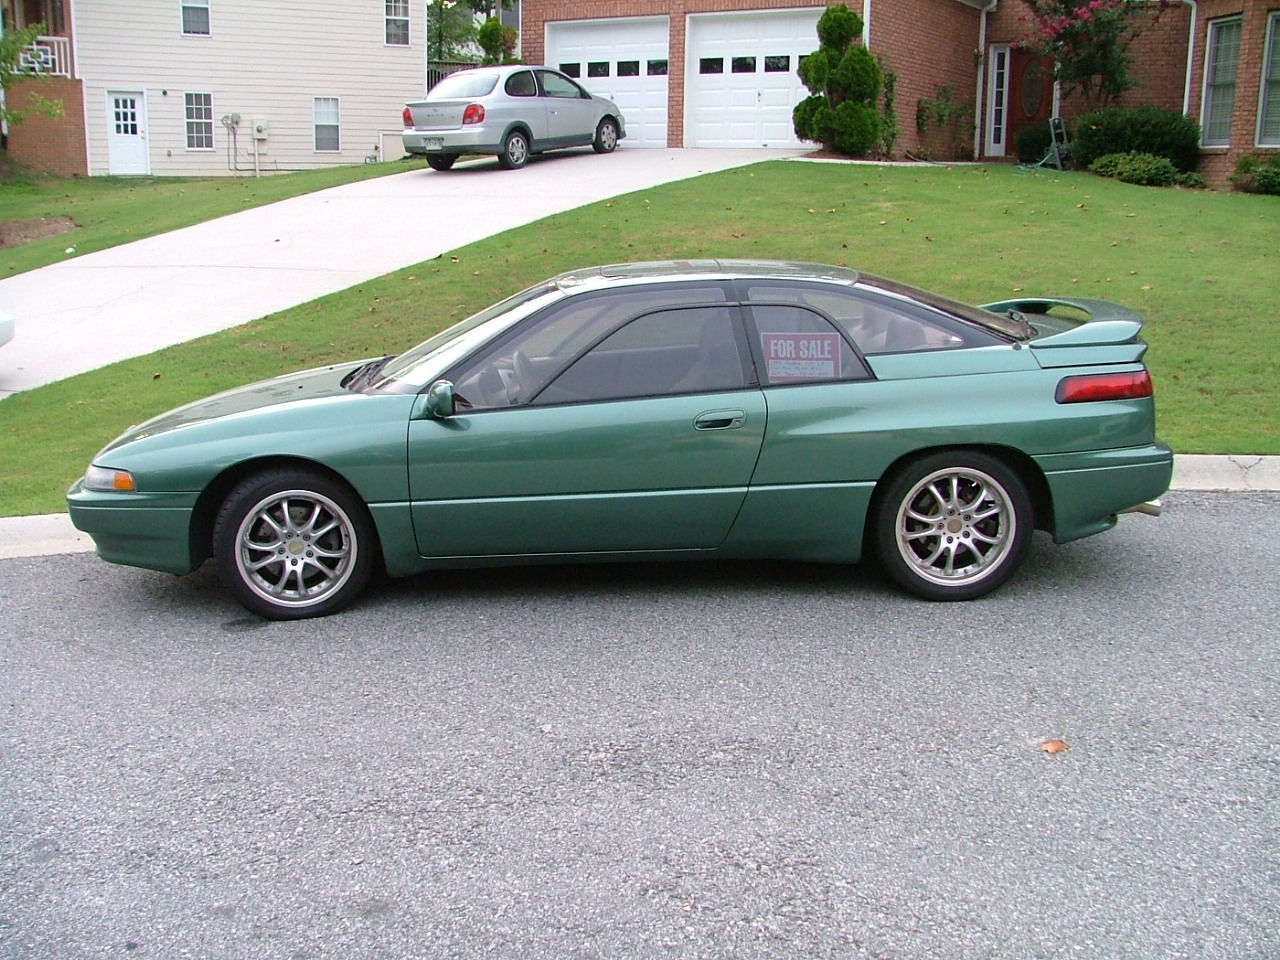 Paint the subaru svx world network for some reason it looks like it belonged on the svx originally and doesnt have that repaint look has a harmonious look with the interior also vanachro Images